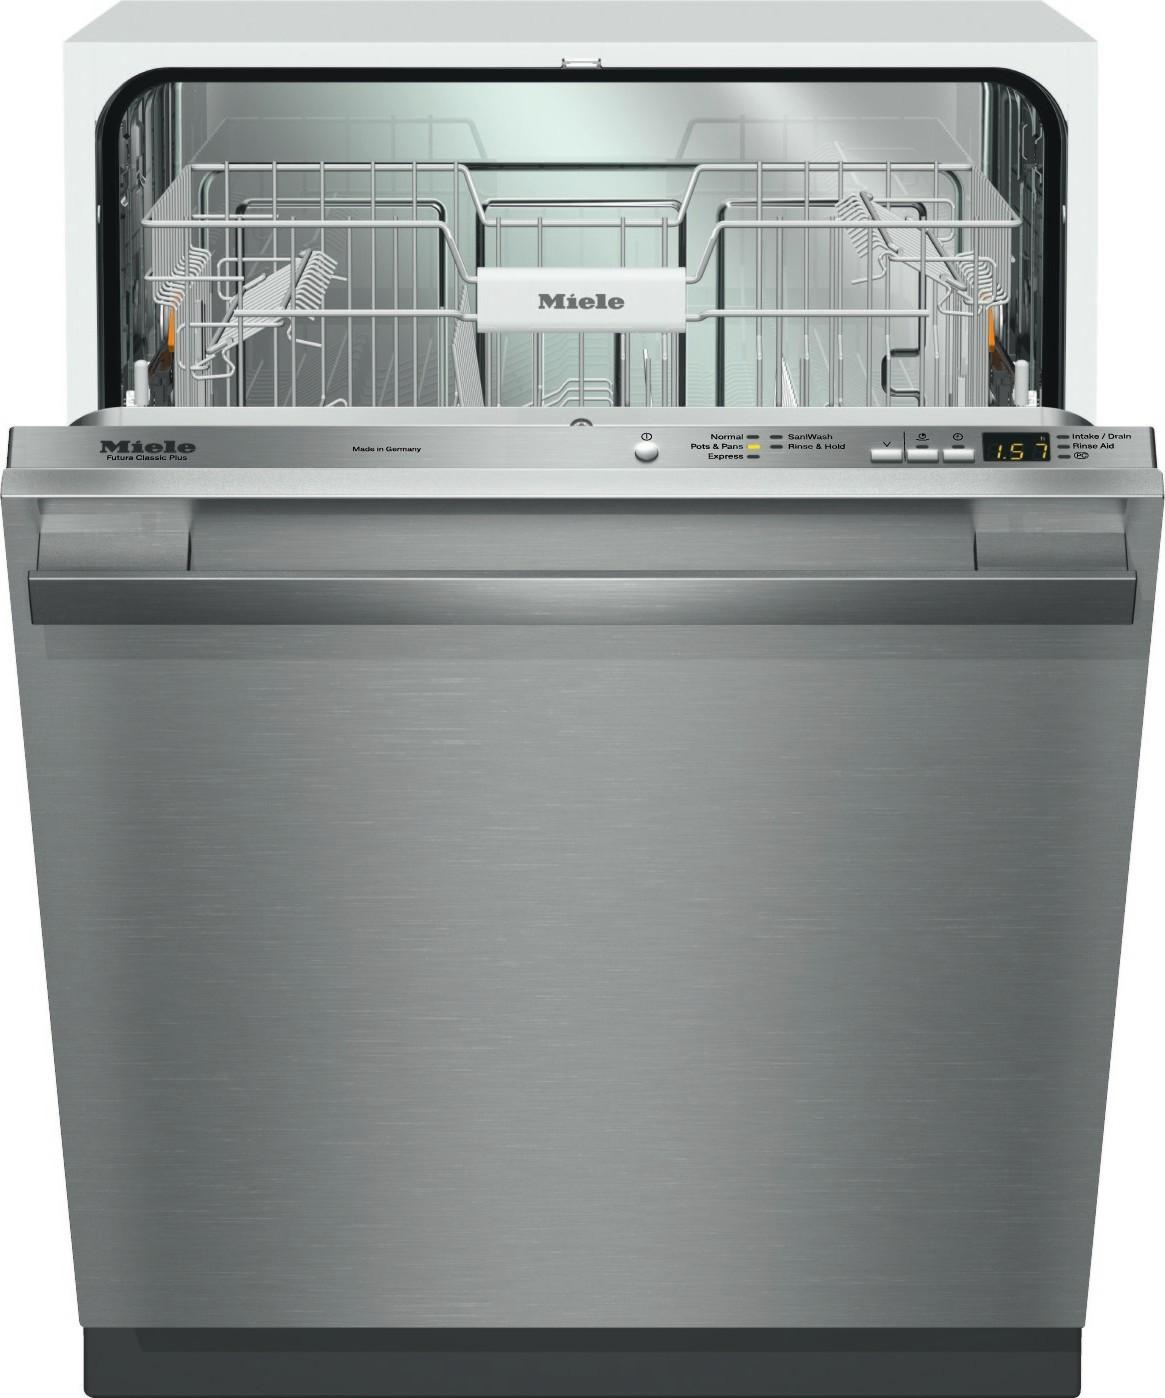 G4977 Miele G4977 Built In Dishwashers